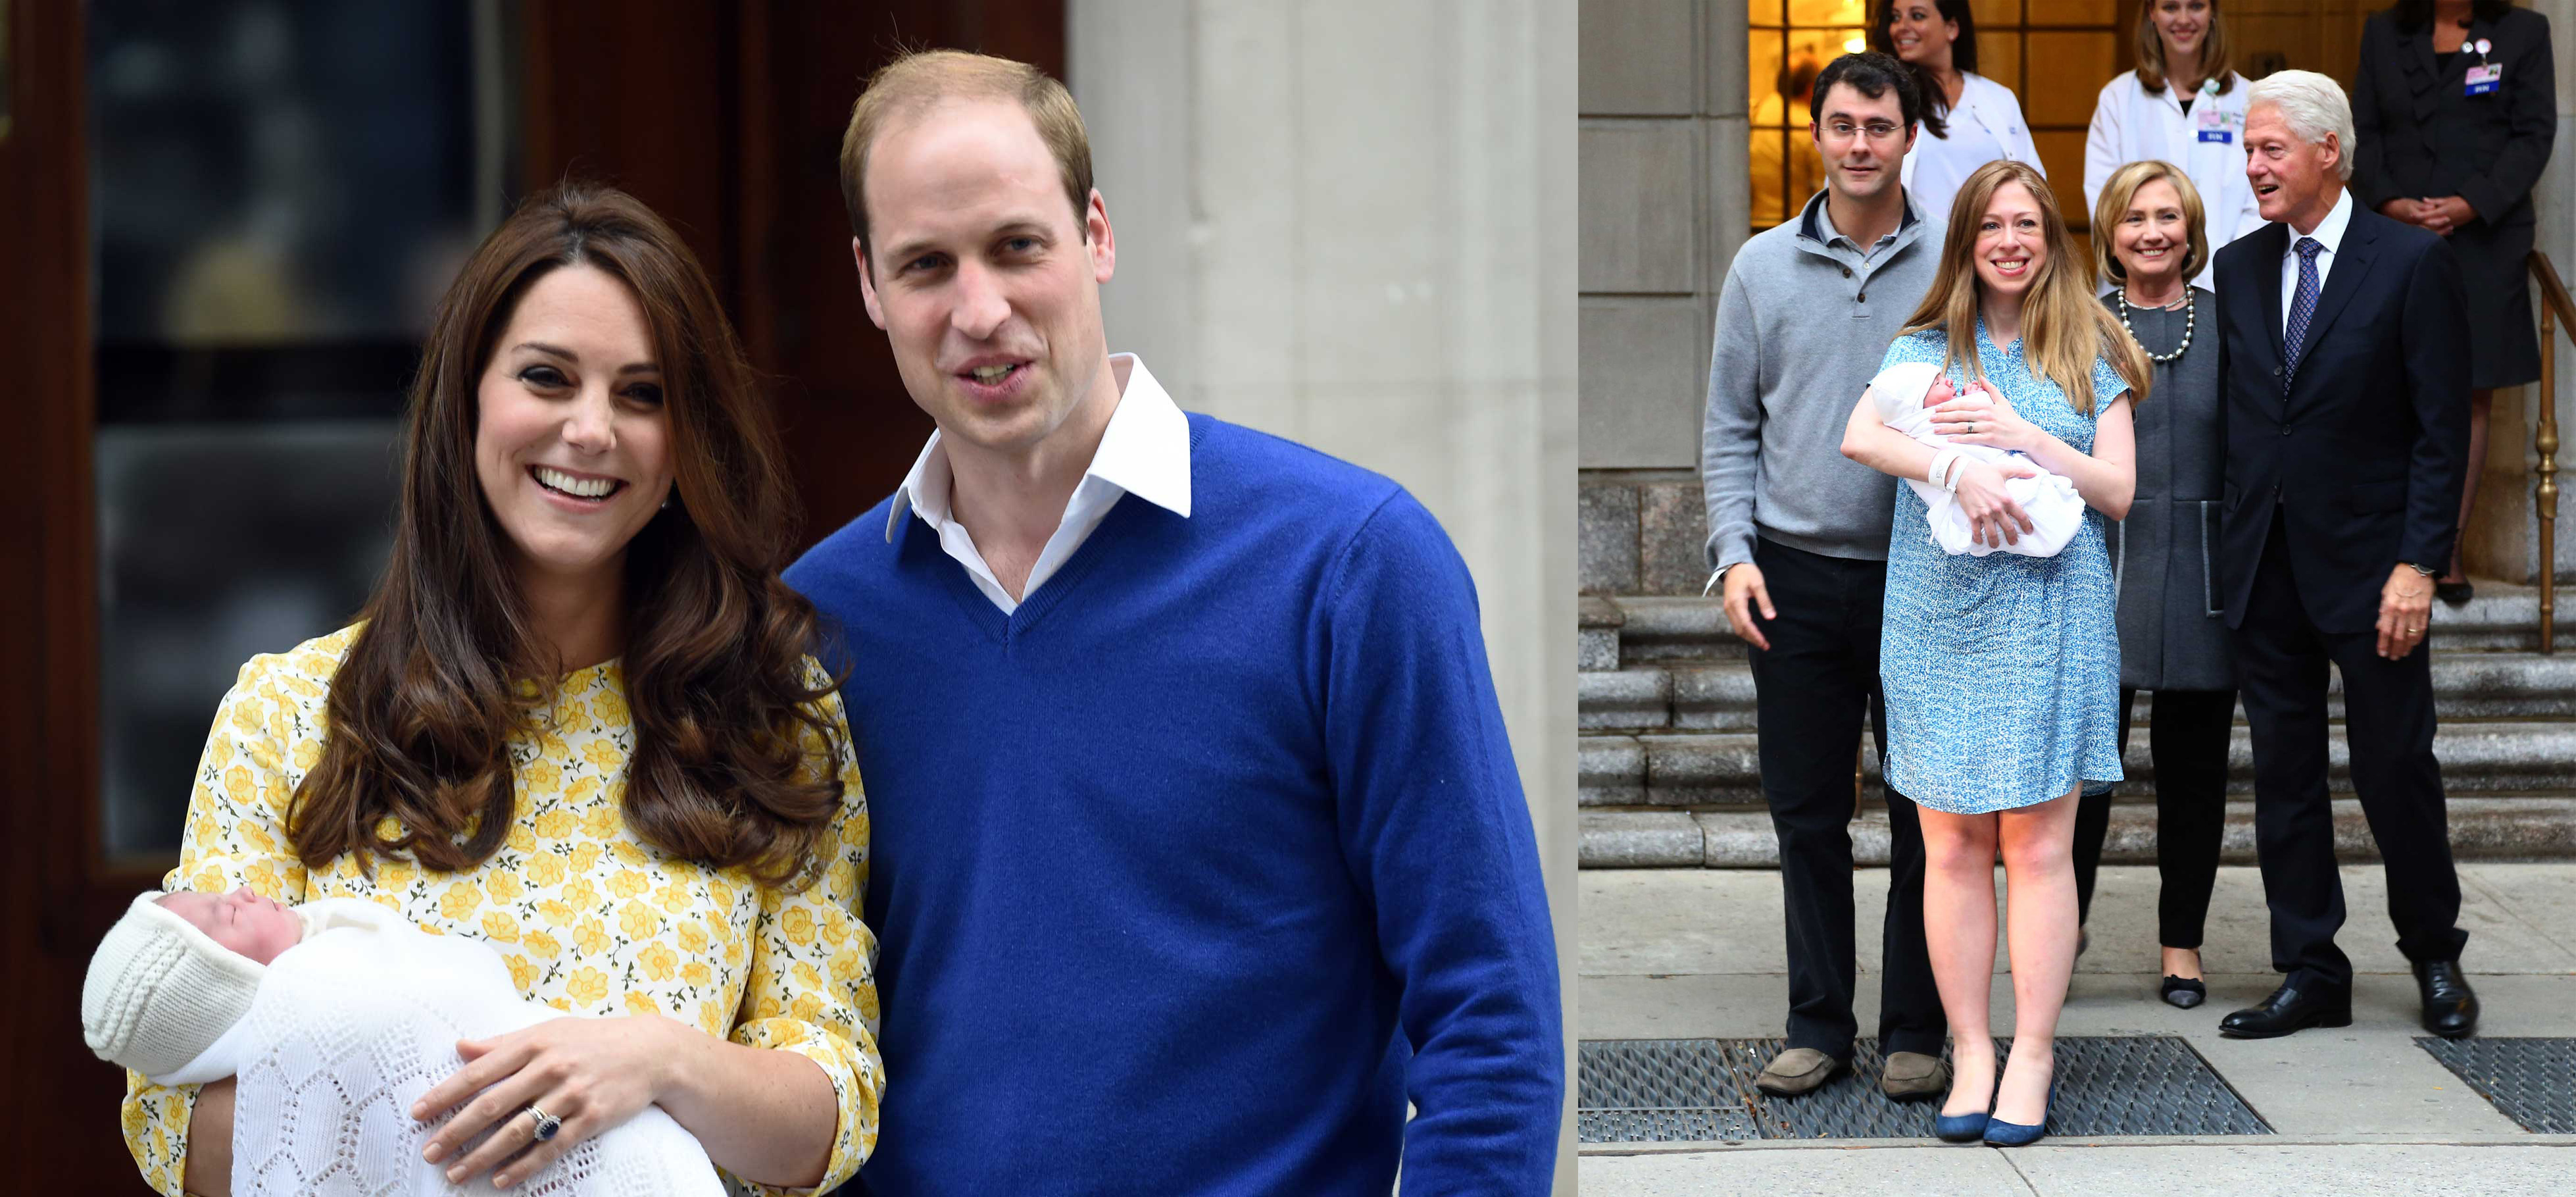 (L) Catherine Duchess of Cambridge and Prince William, Duke of Cambridge leave the Lindo Wing at St. Mary's Hospital  with their new born baby daughter. (R) Chelsea Clinton leaves Lenox Hill Hospital with her baby, Charlotte, husband Marc and parents, Bill and Hillary Clinton.